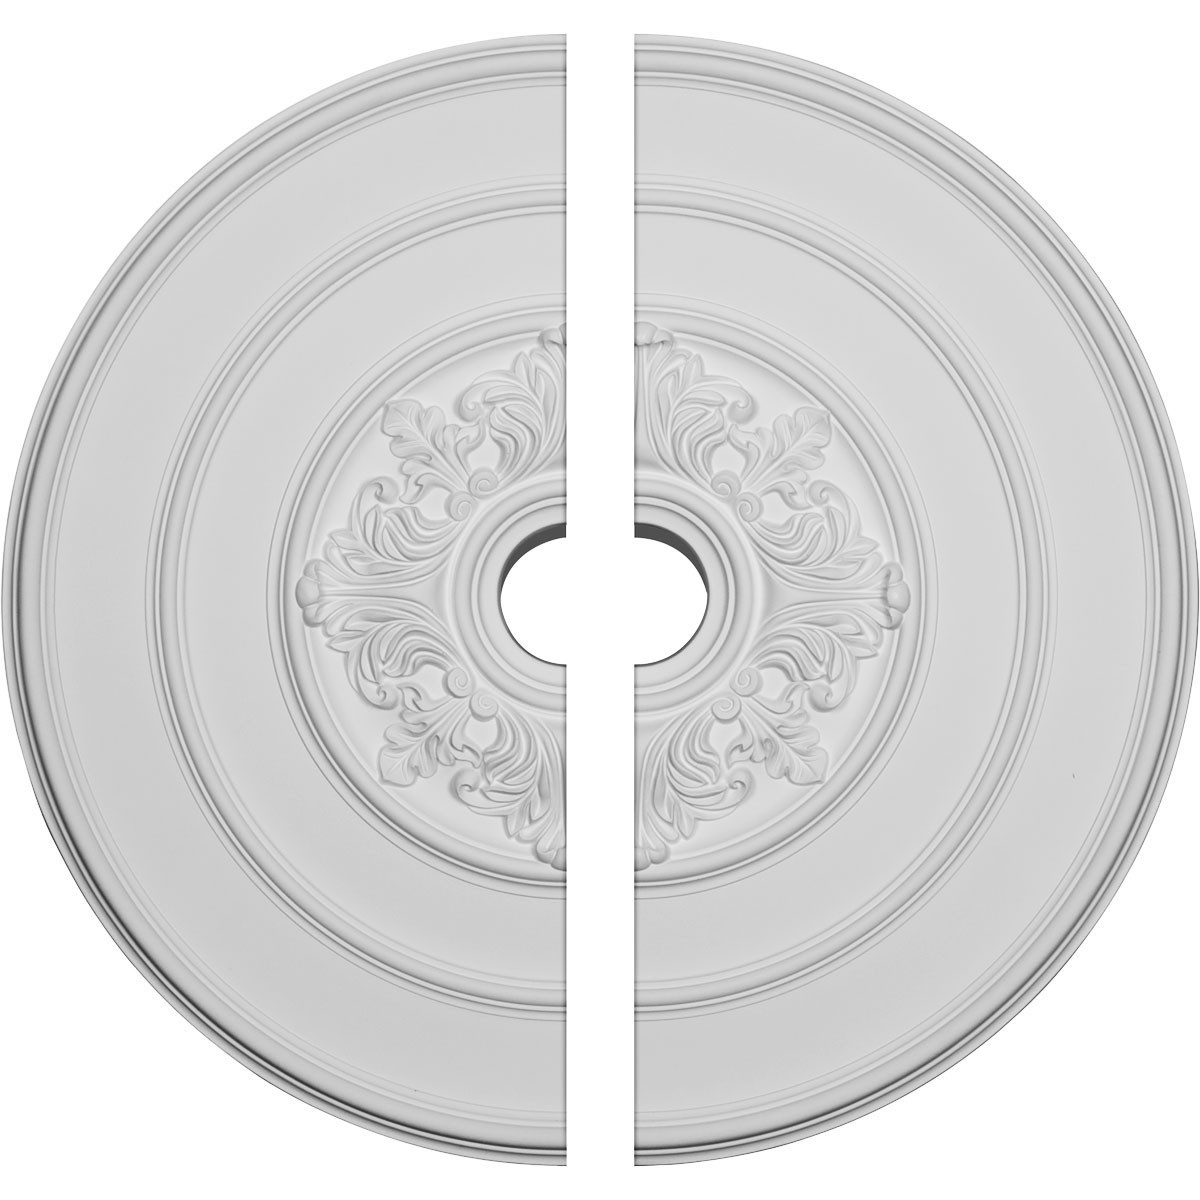 """EM-CM26TA2 - 26""""OD x 3 1/8""""ID x 1 1/2""""P Traditional with Acanthus Leaves Ceiling Medallion, Two Piece (Fits Canopies up to 4 1/4"""")"""